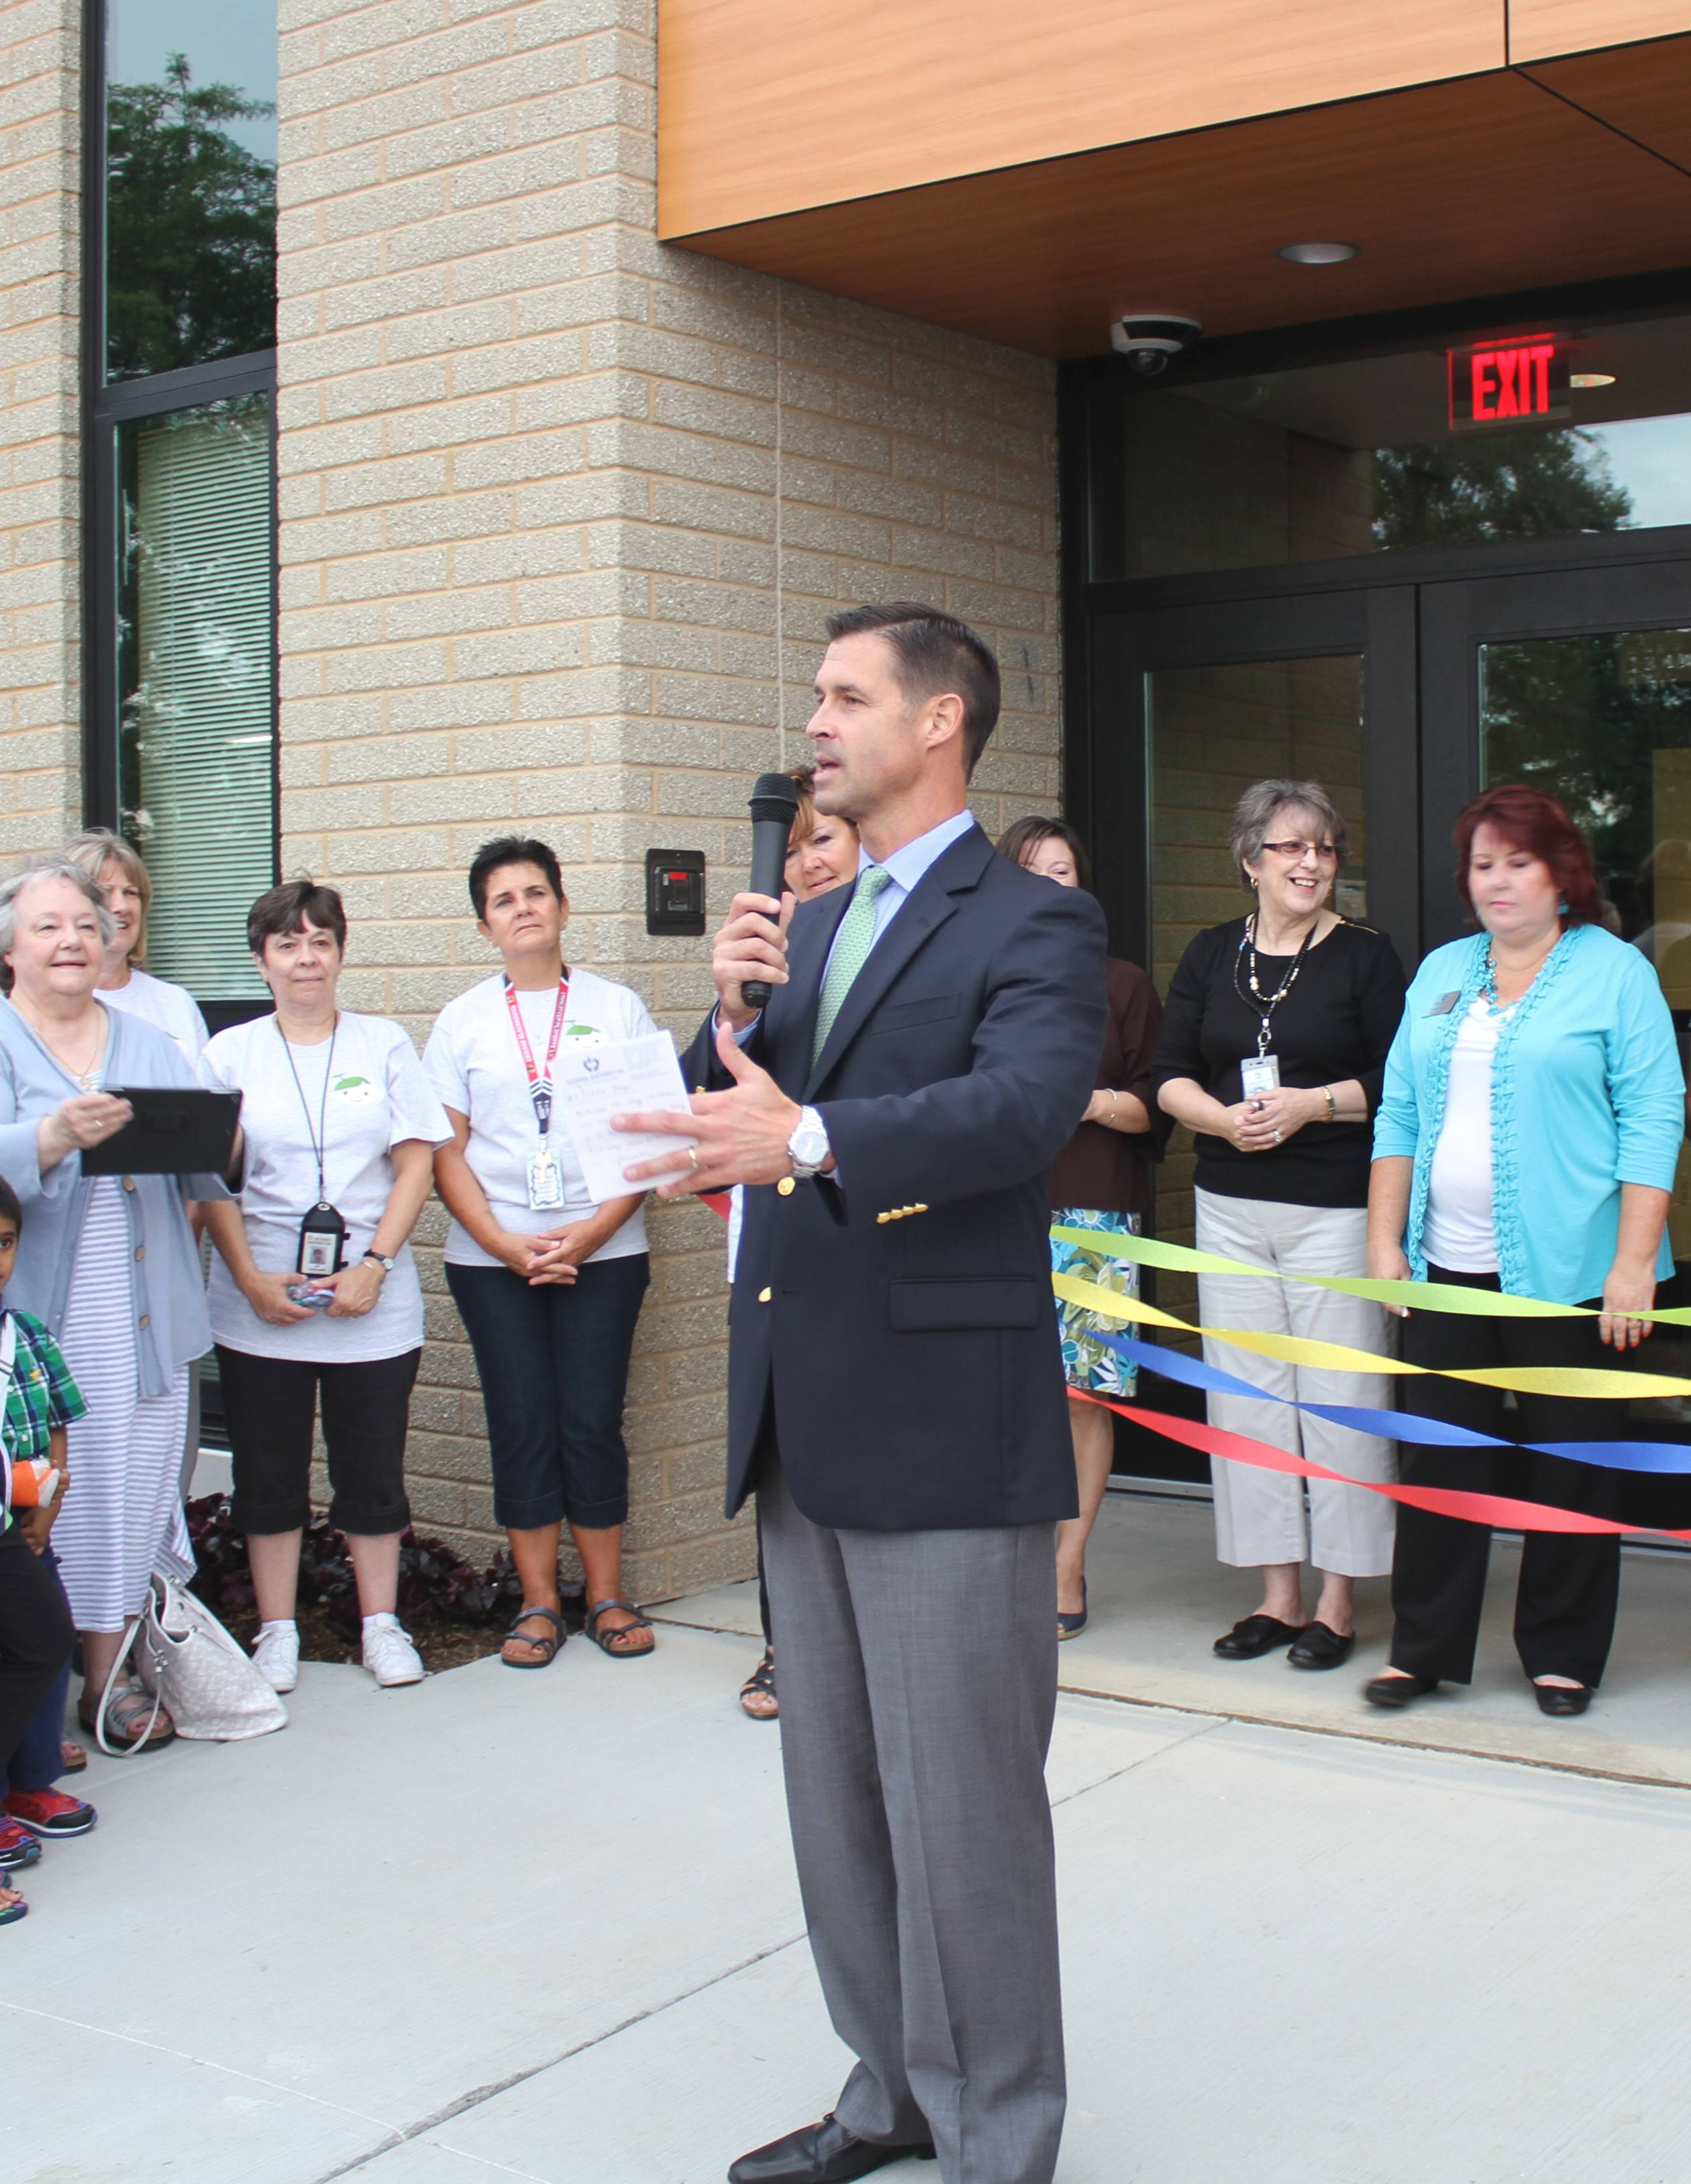 Superintendent Andrew DuRoss thanks those who helped bring the new Early Learning Center to fruition.